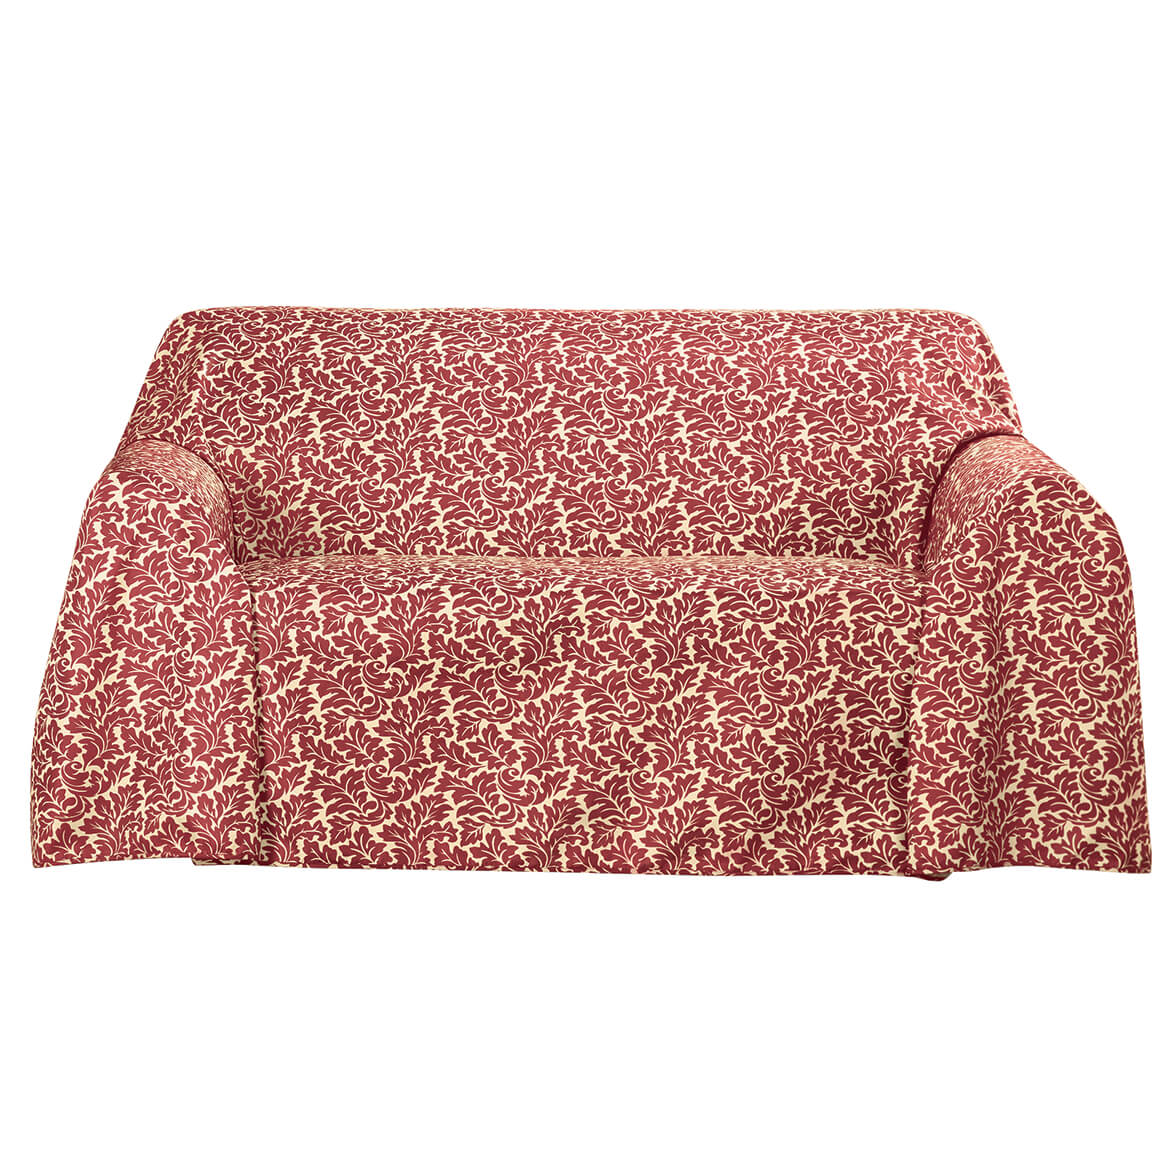 Damask II Loveseat Throw